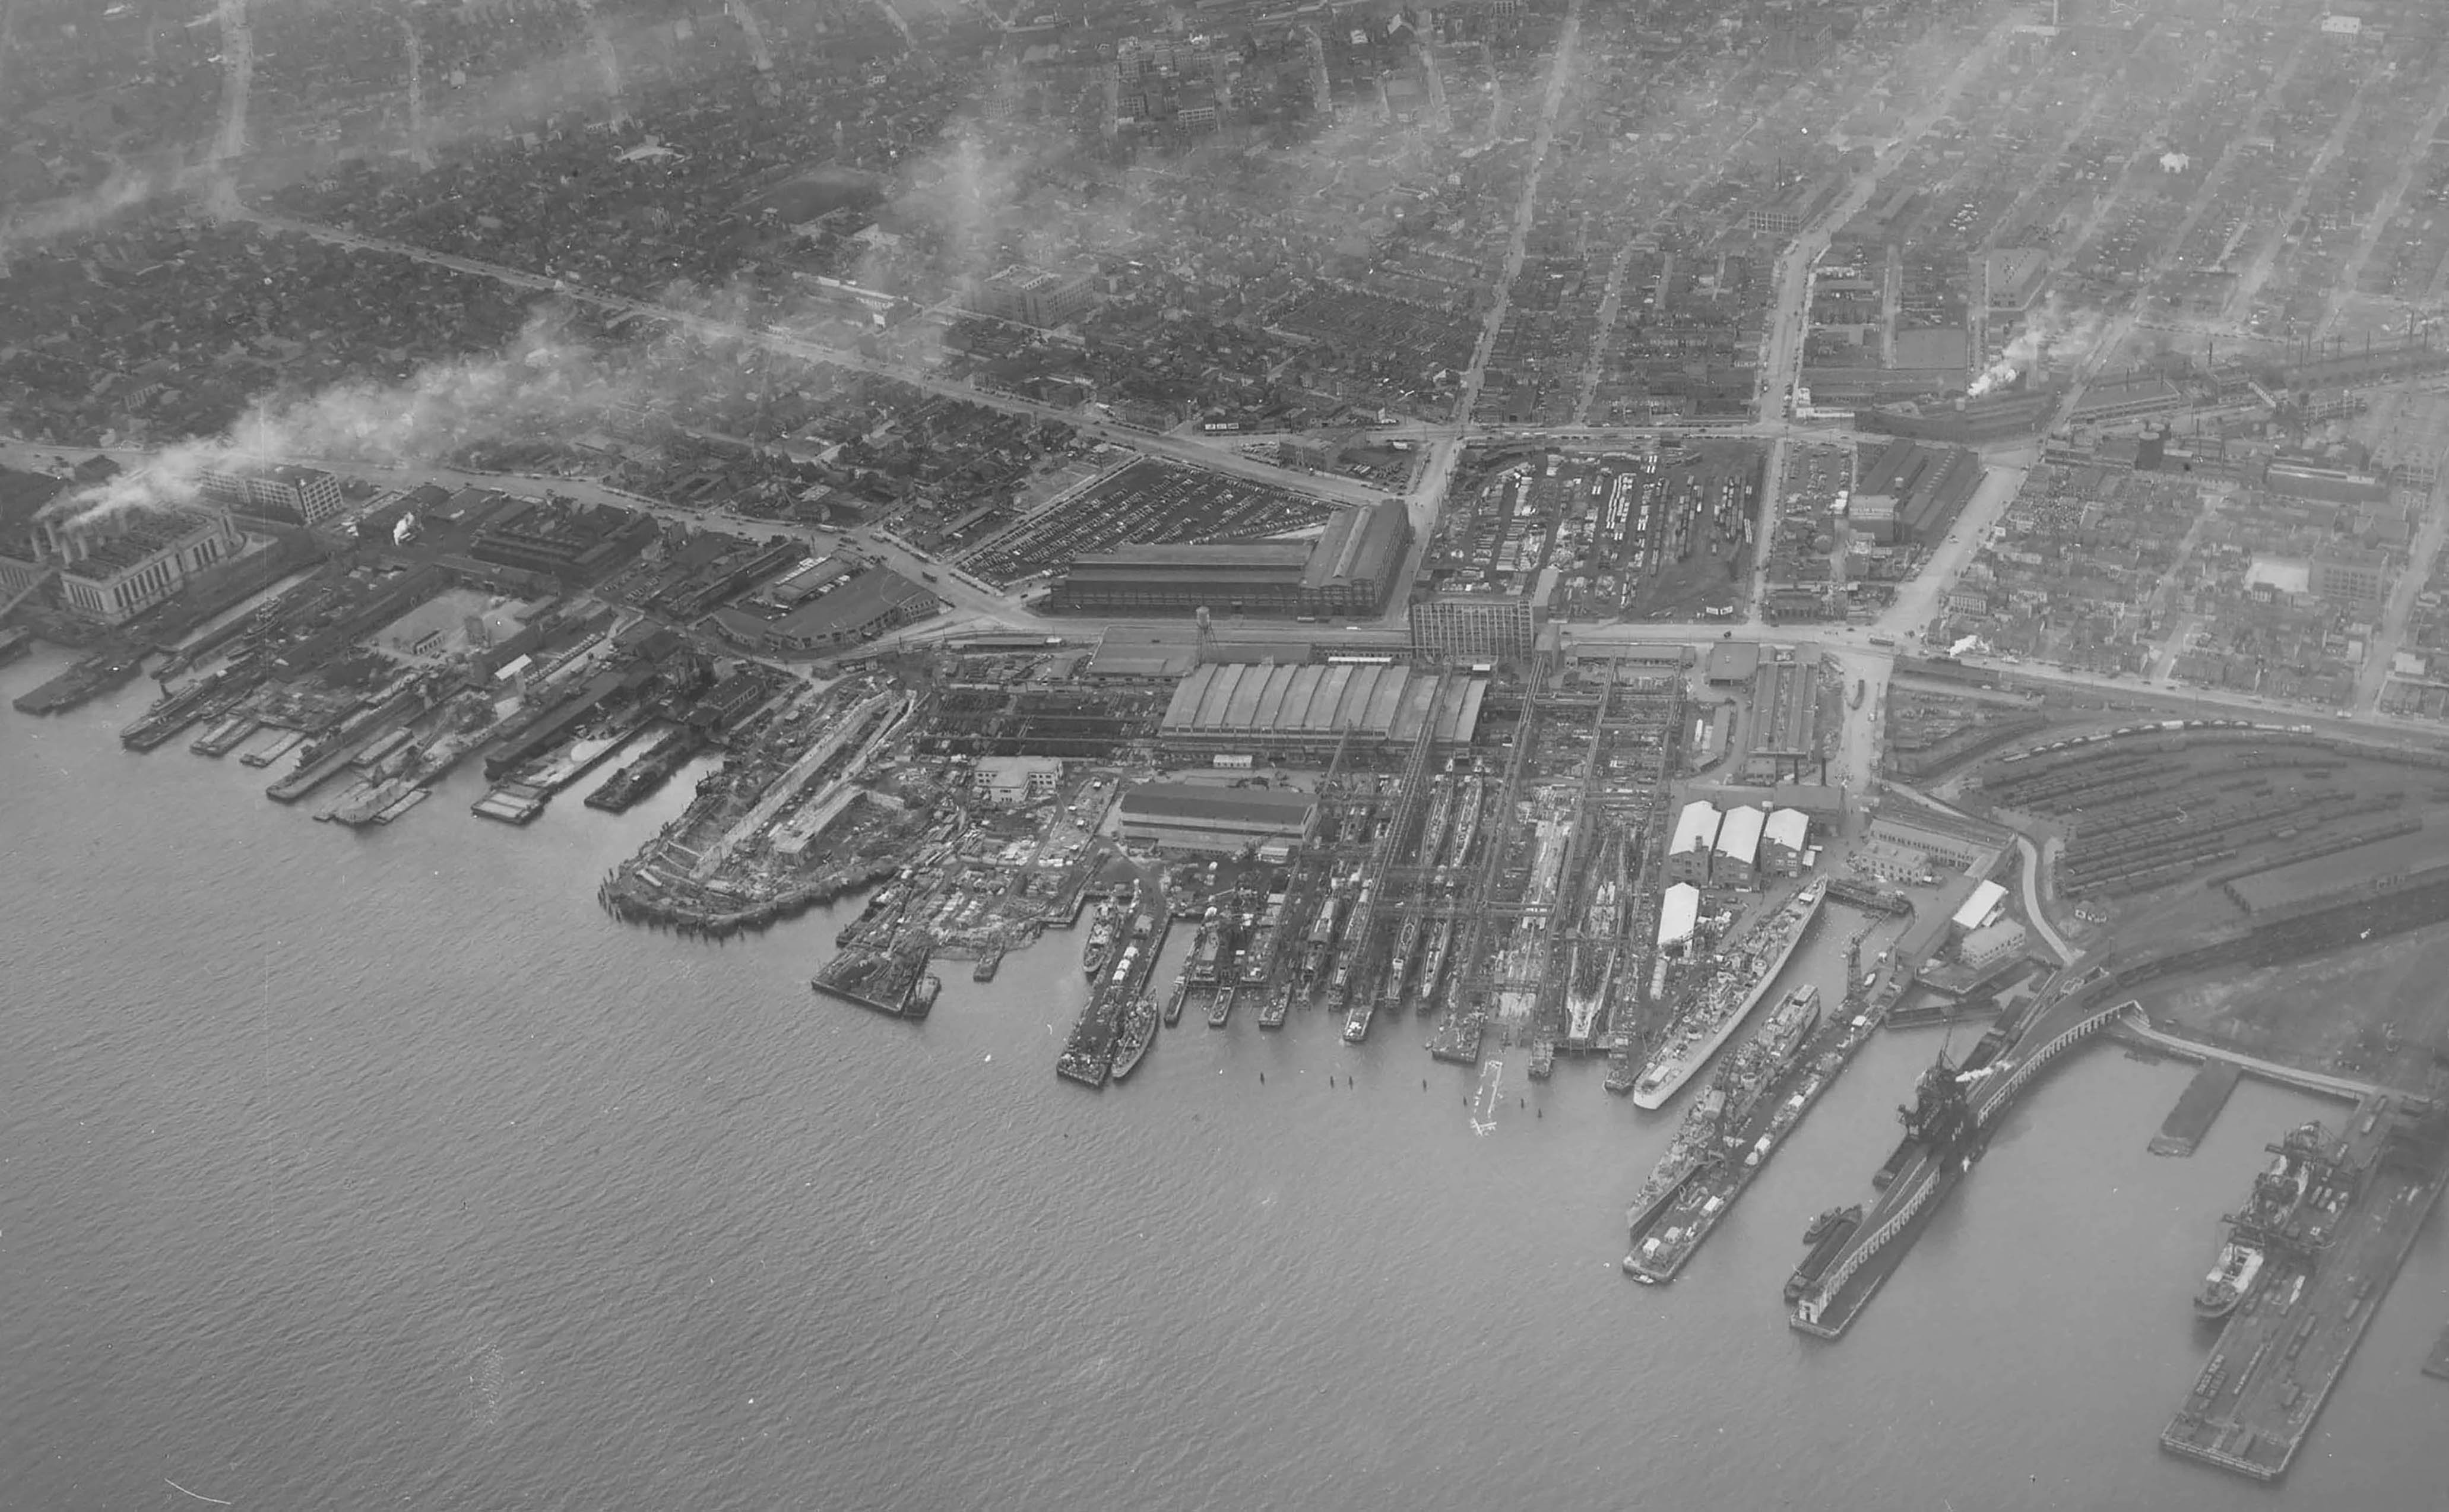 An aerial view of the Philadelphia shipyard during Ling's construction, with Ling among several other submarines at left. For a full list of vessels, see the NavSource link below.